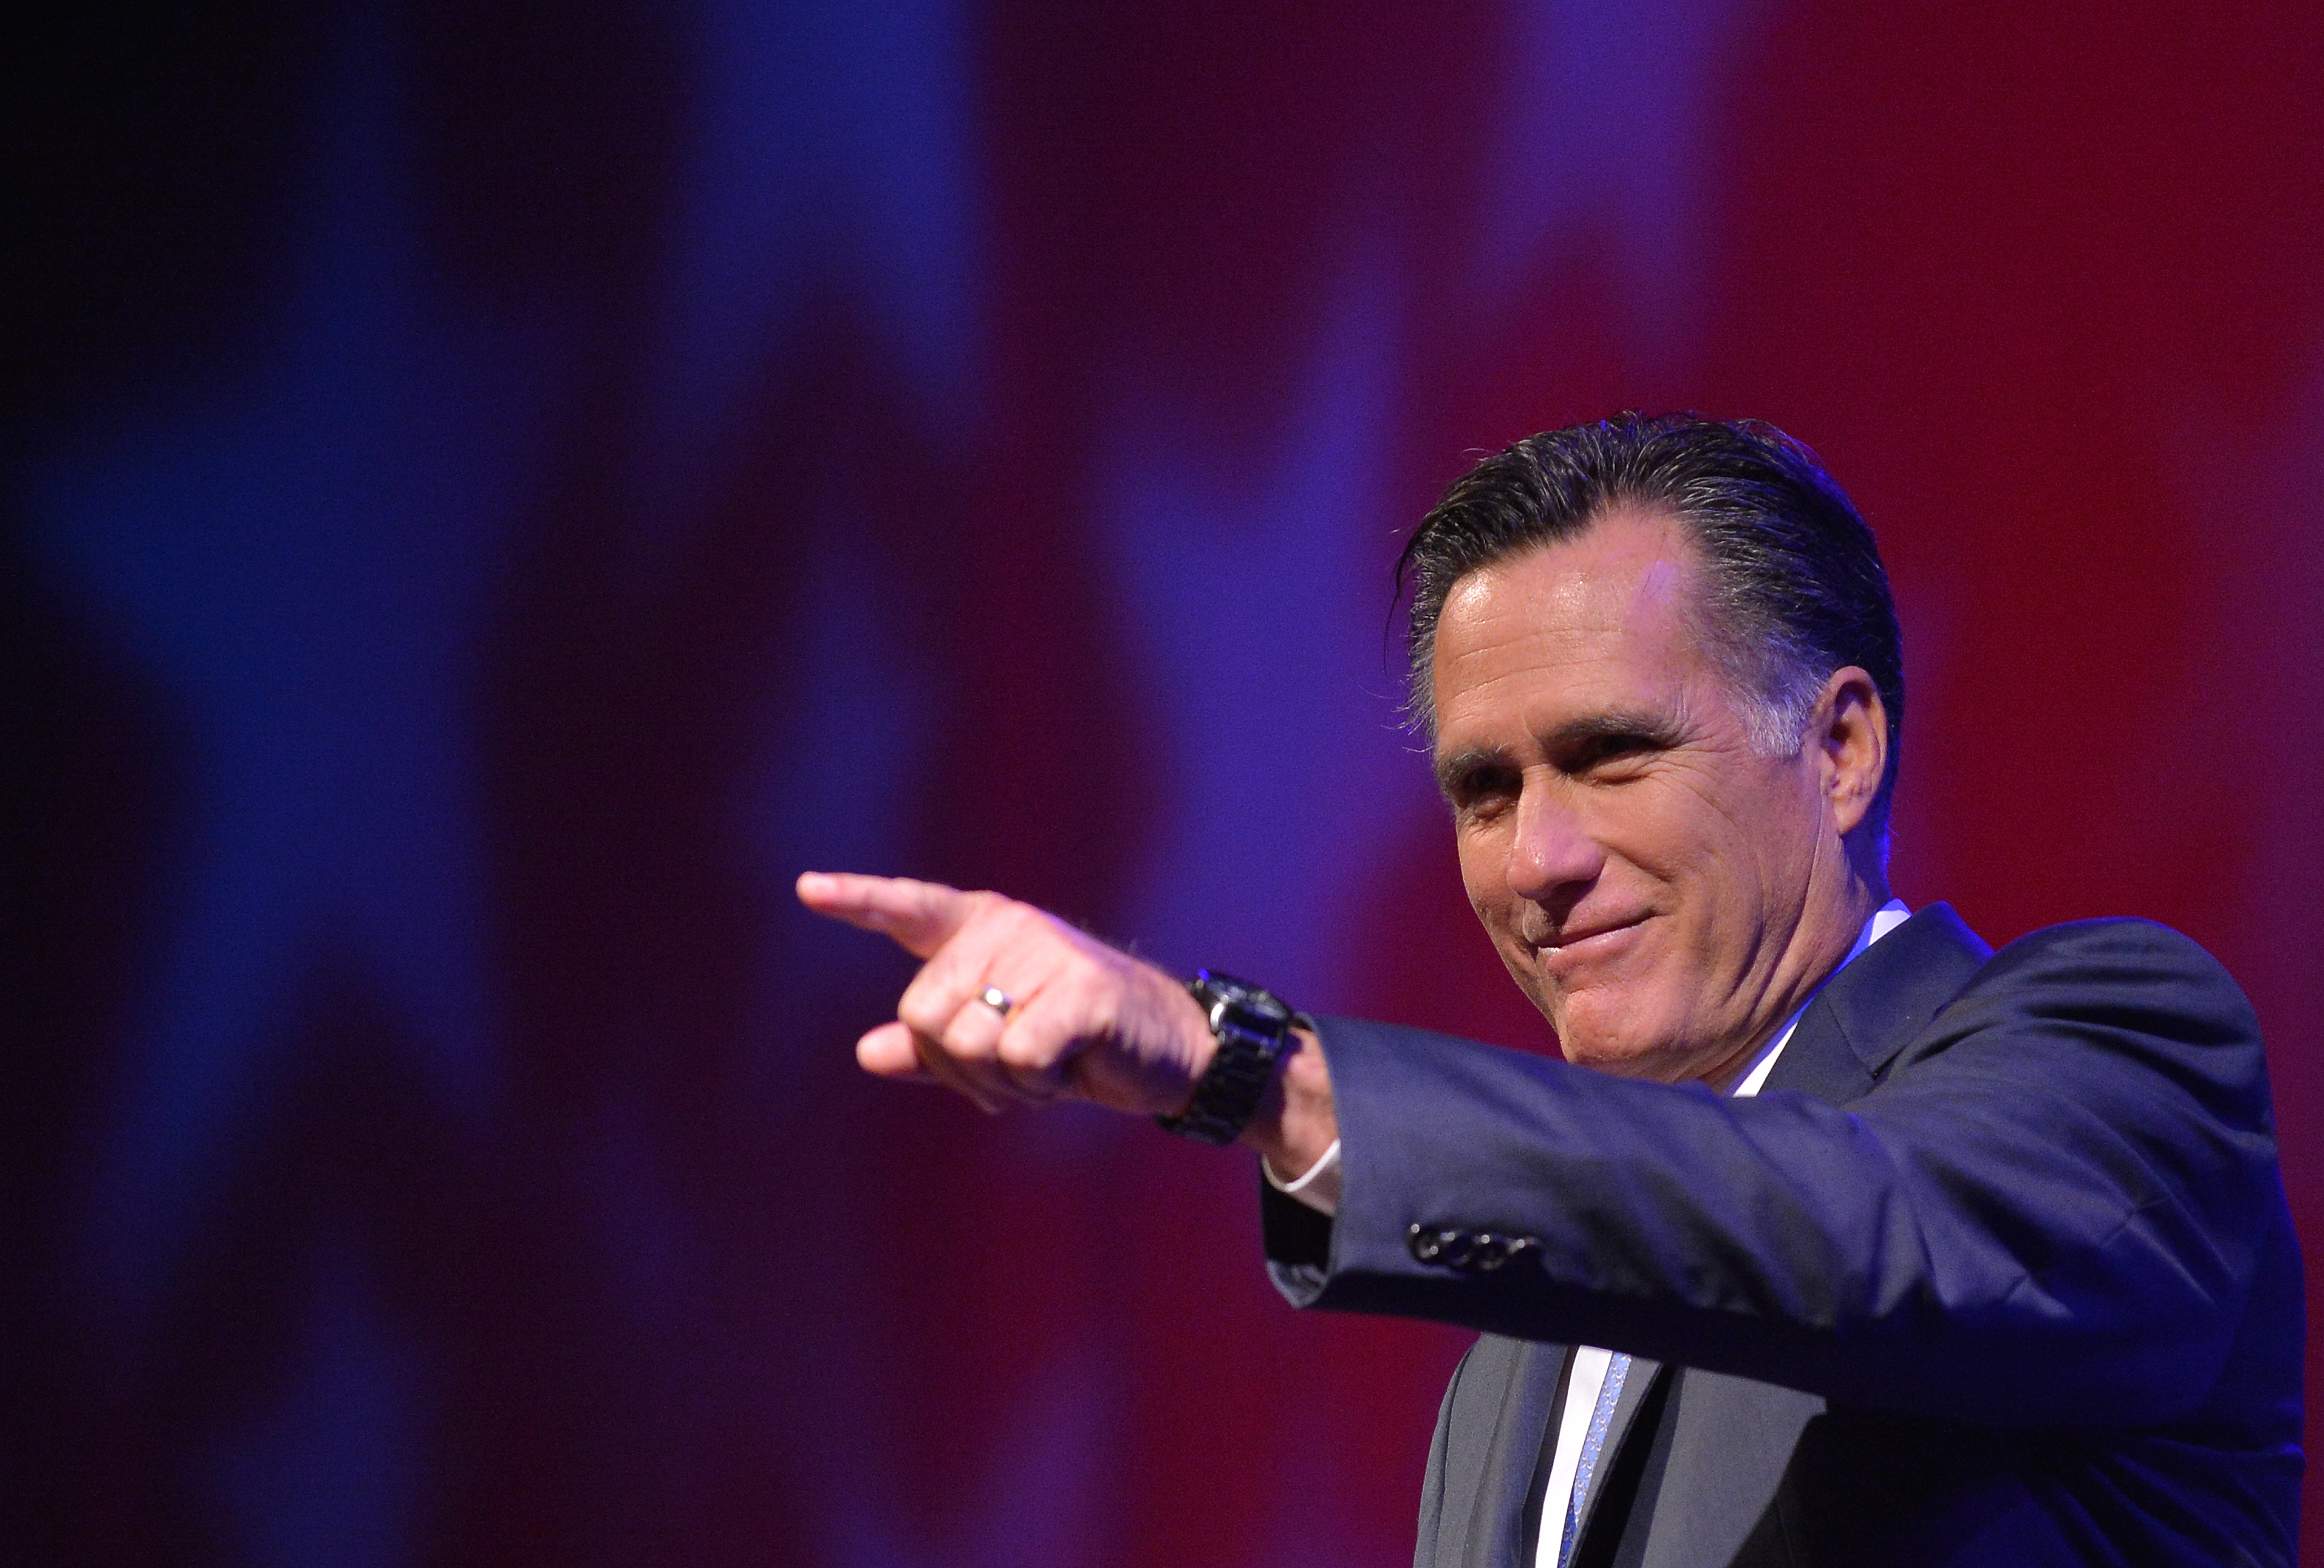 'Mitt Romney's missing character narrative should be part of his convention speech,' says John Avlon